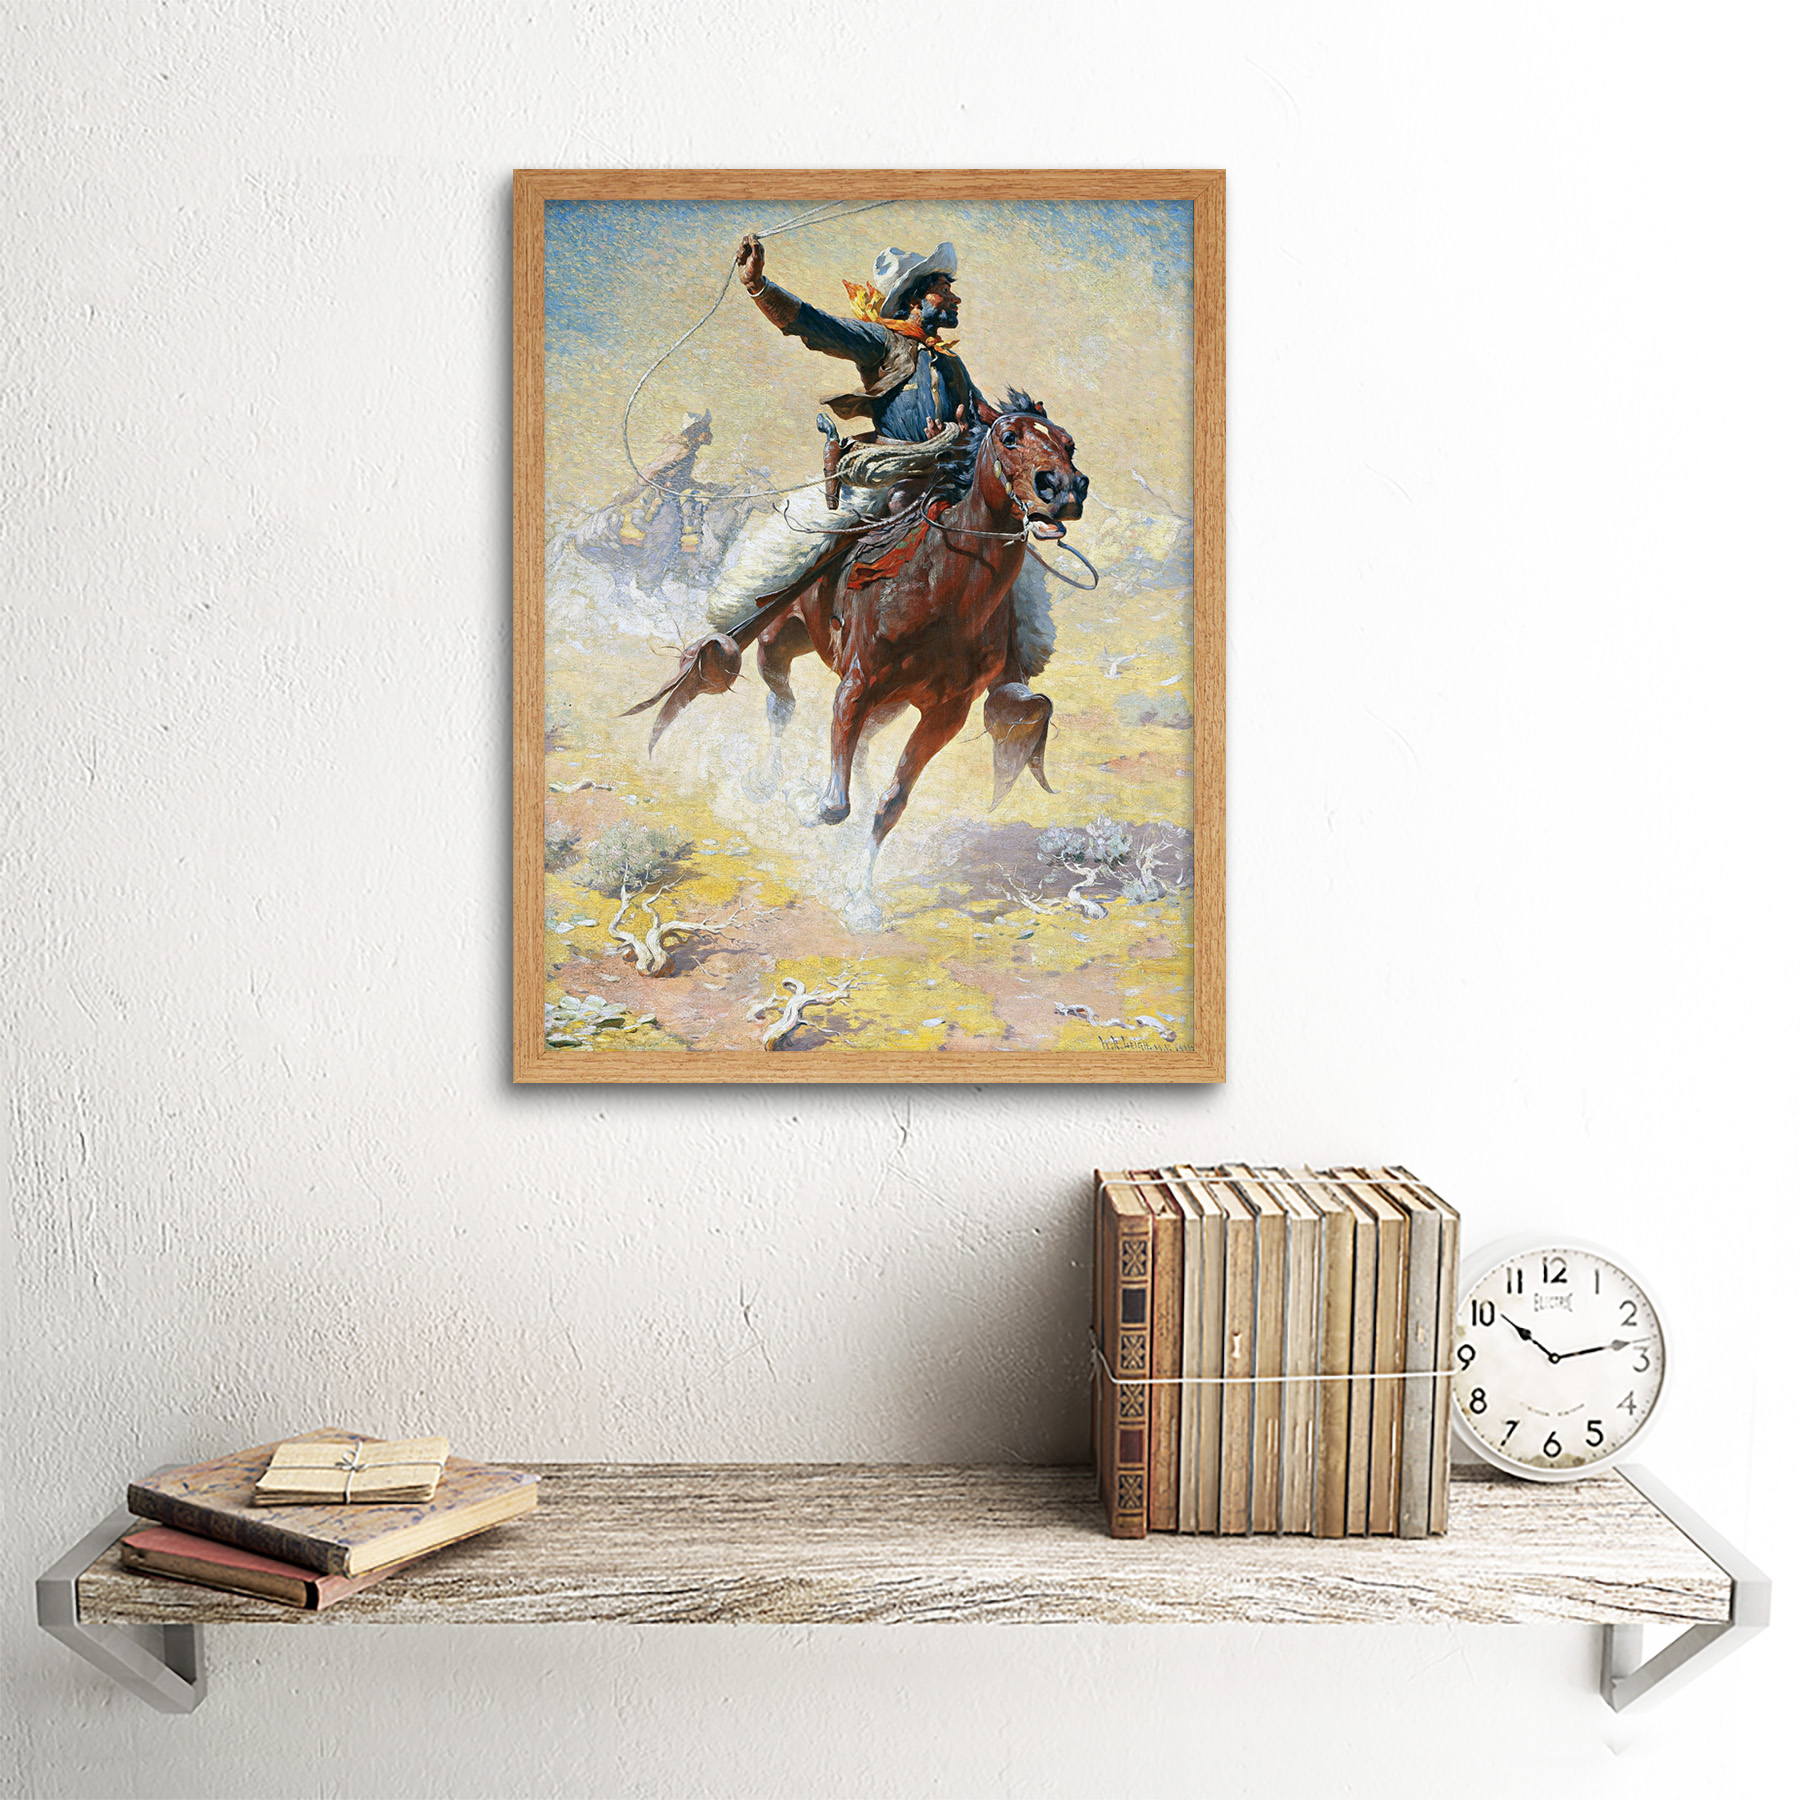 Leigh-The-Roping-Cowboy-Lasso-Horse-Painting-Art-Print-Framed-12x16 thumbnail 13